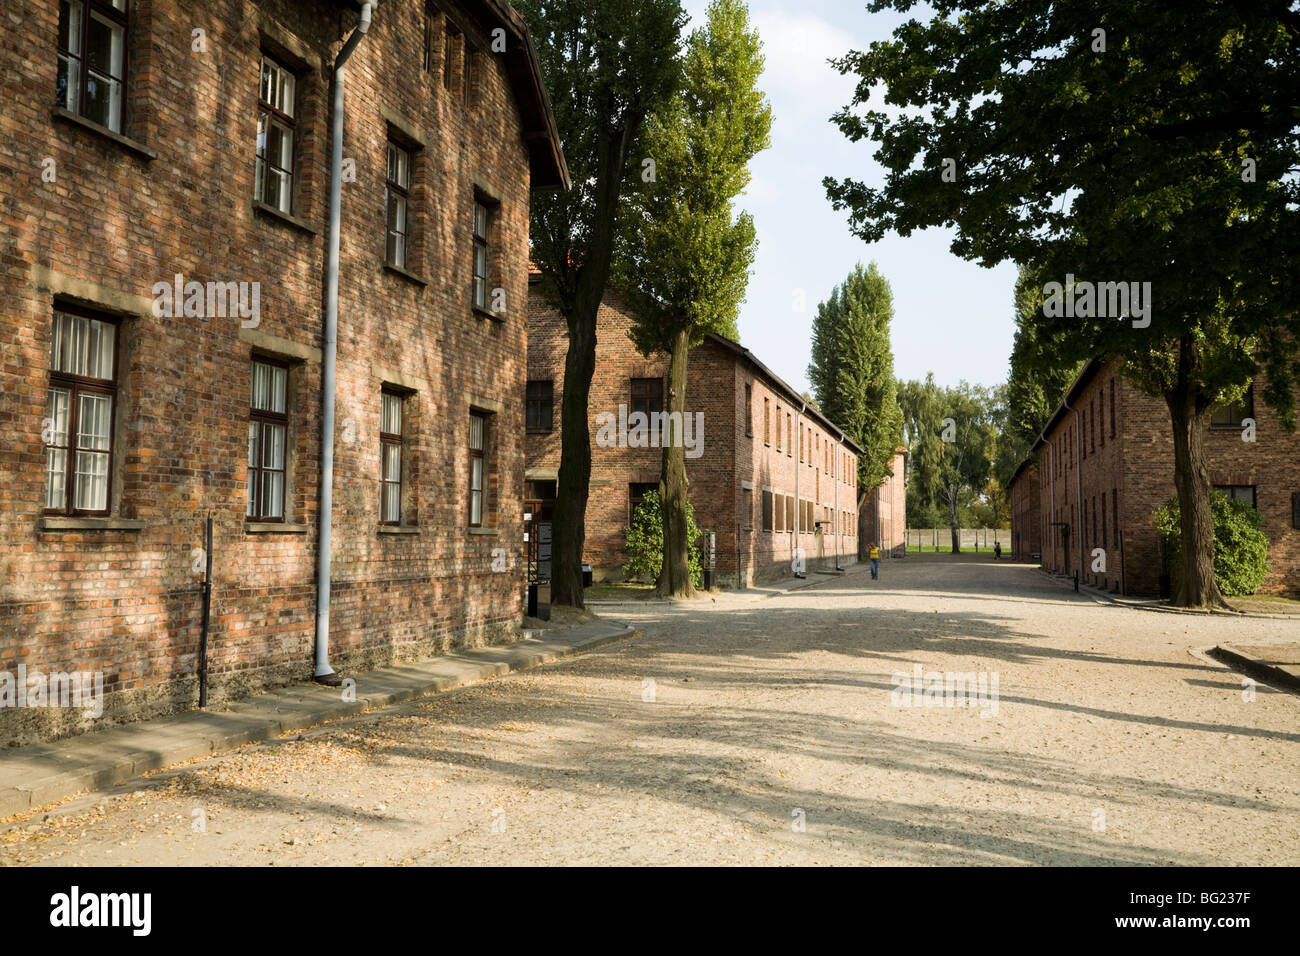 Prisoner accommodation blocks on either side of an avenue / road at the Auschwitz Nazi death camp in Oswiecim, Poland. - Stock Image